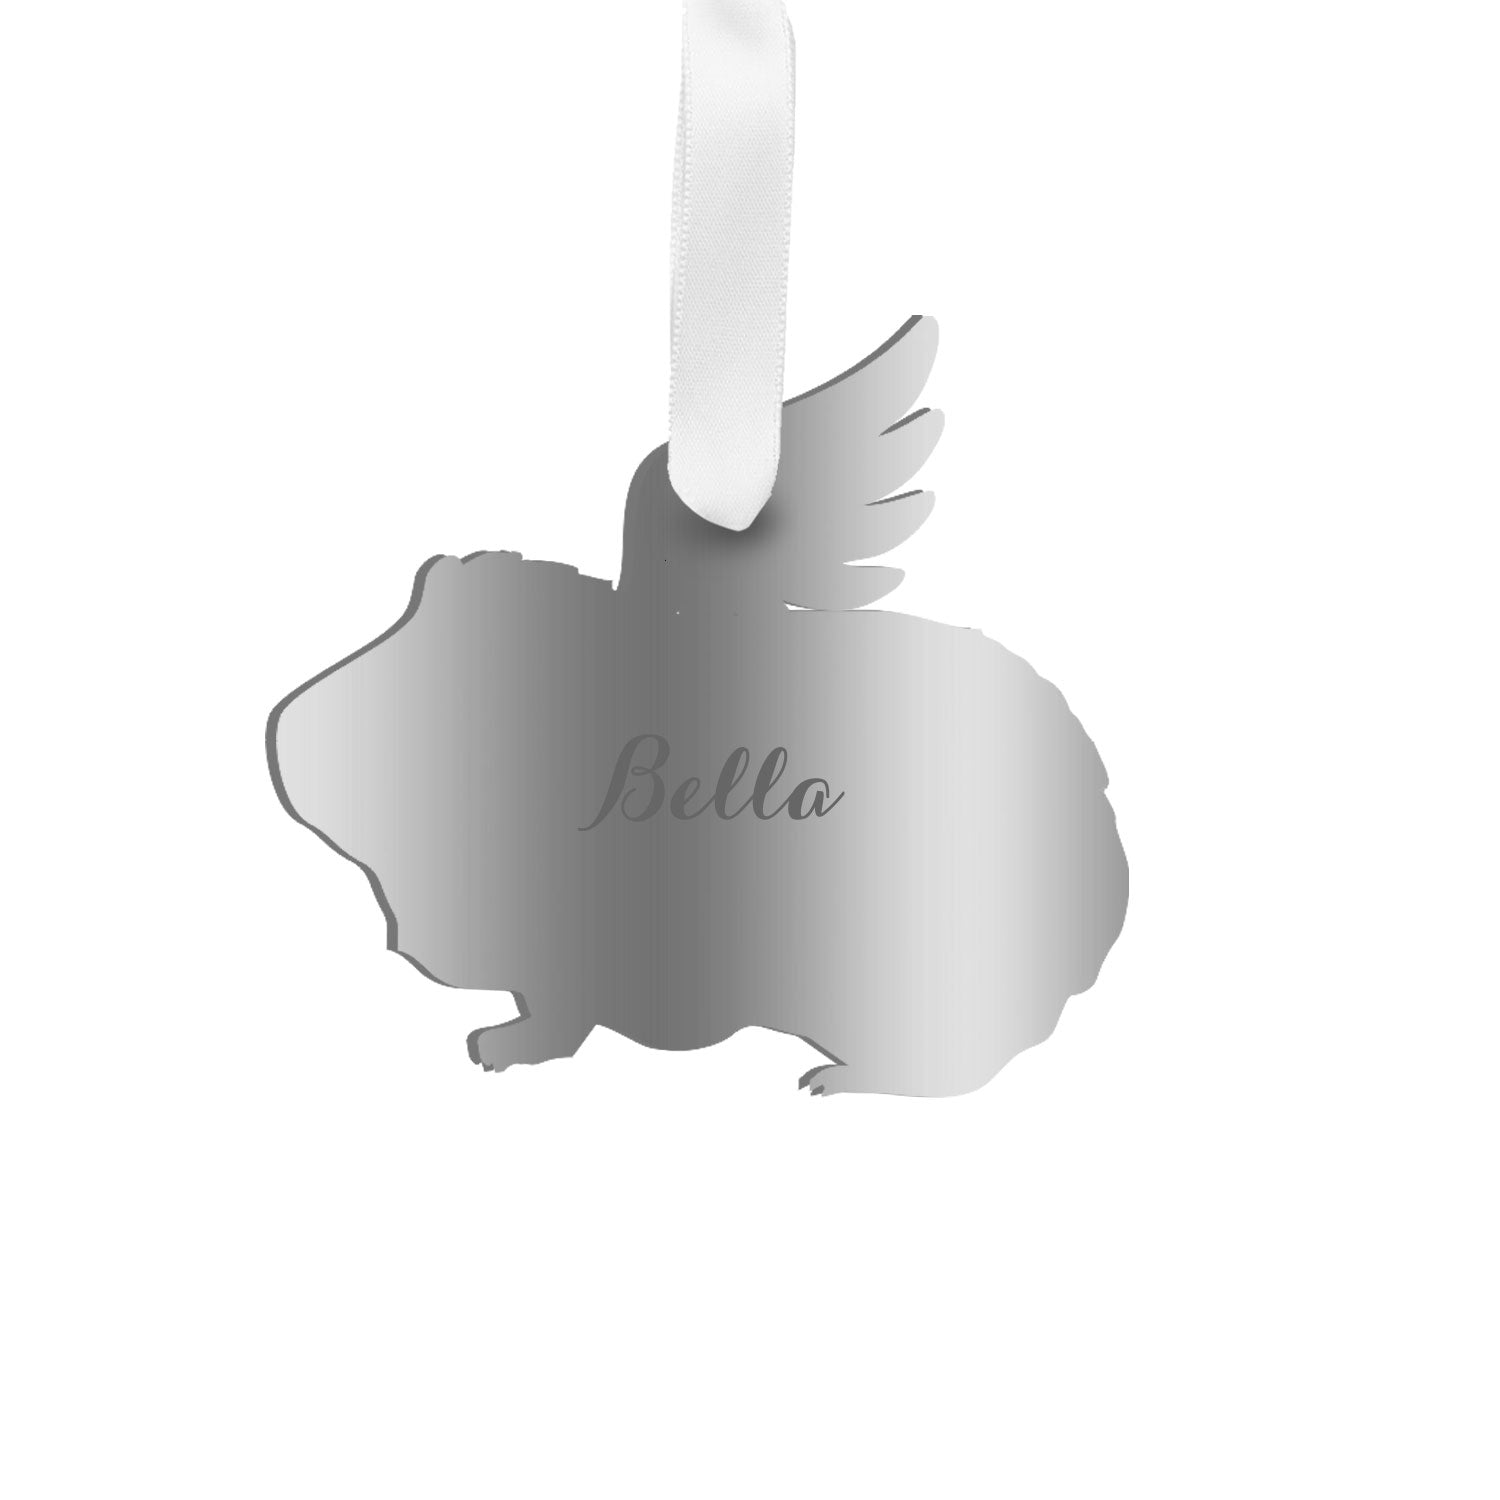 Moon and Lola - Personalized Angel Guinea Pig Ornament with wings in silver